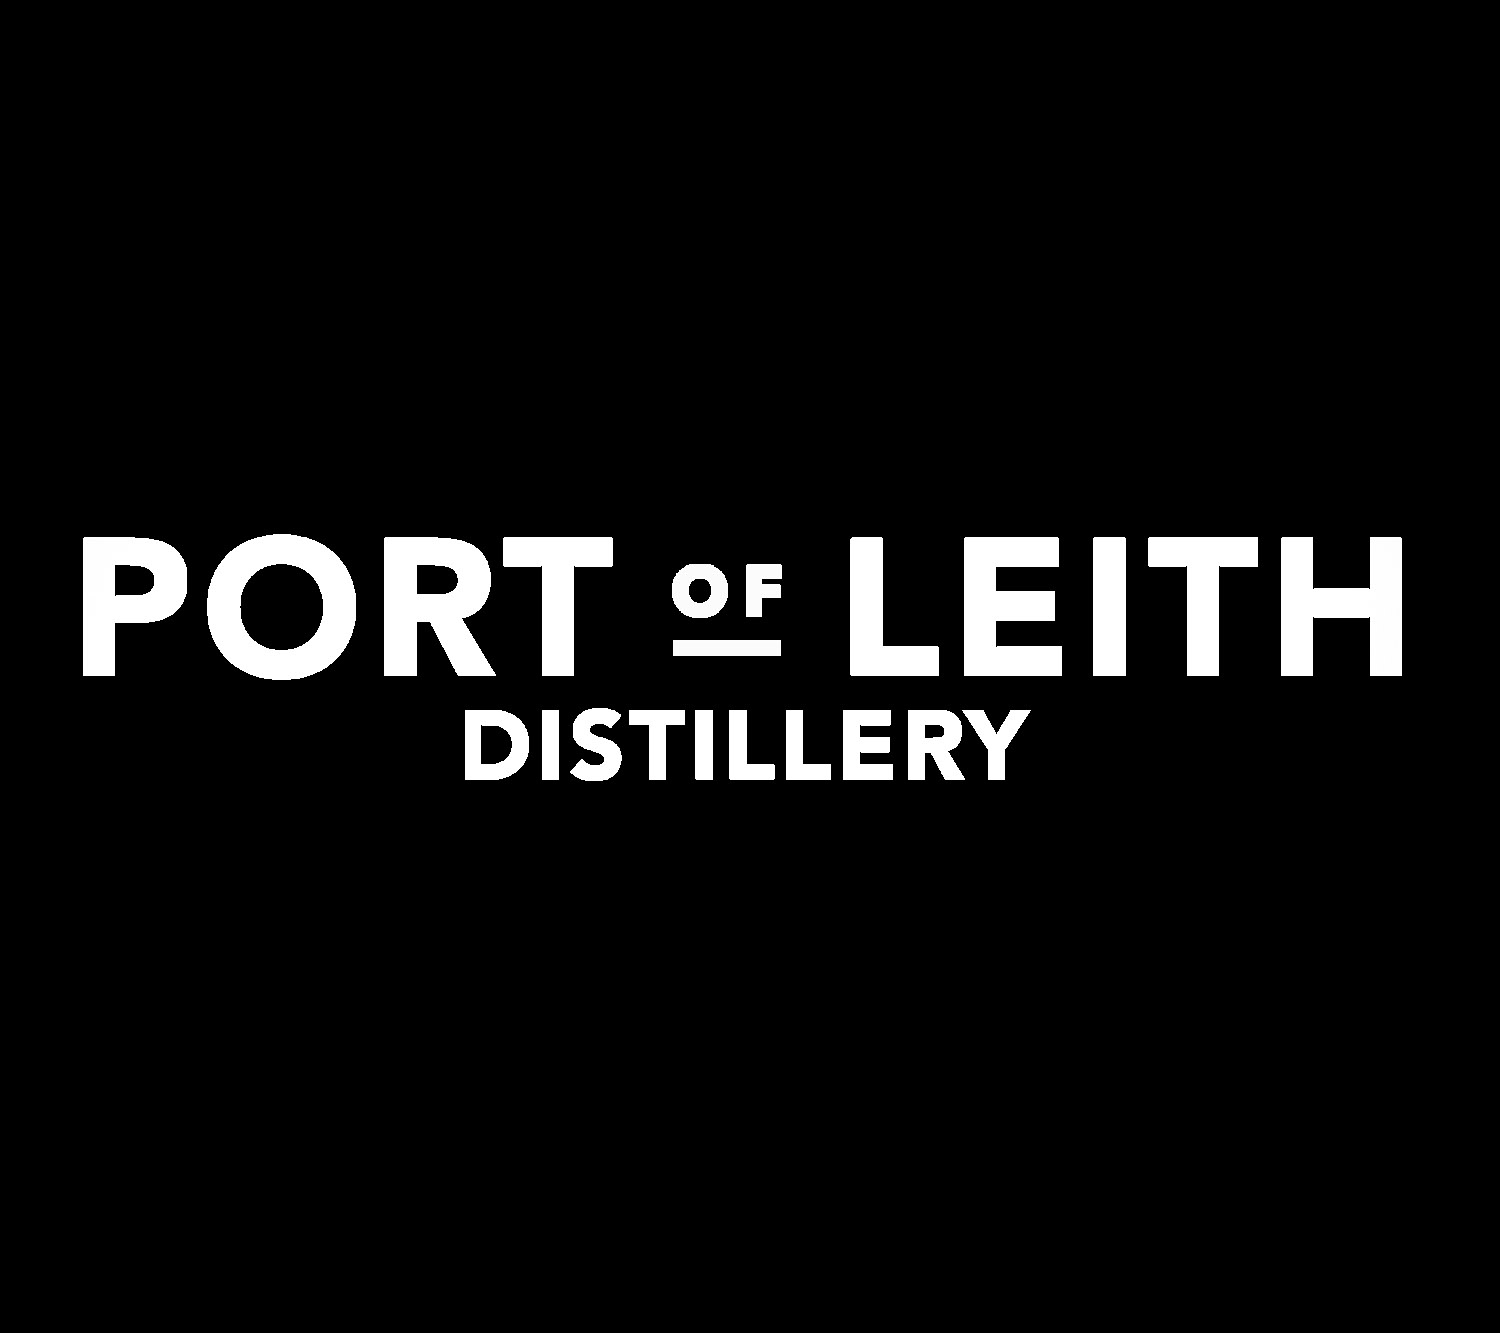 Port of leith.jpg